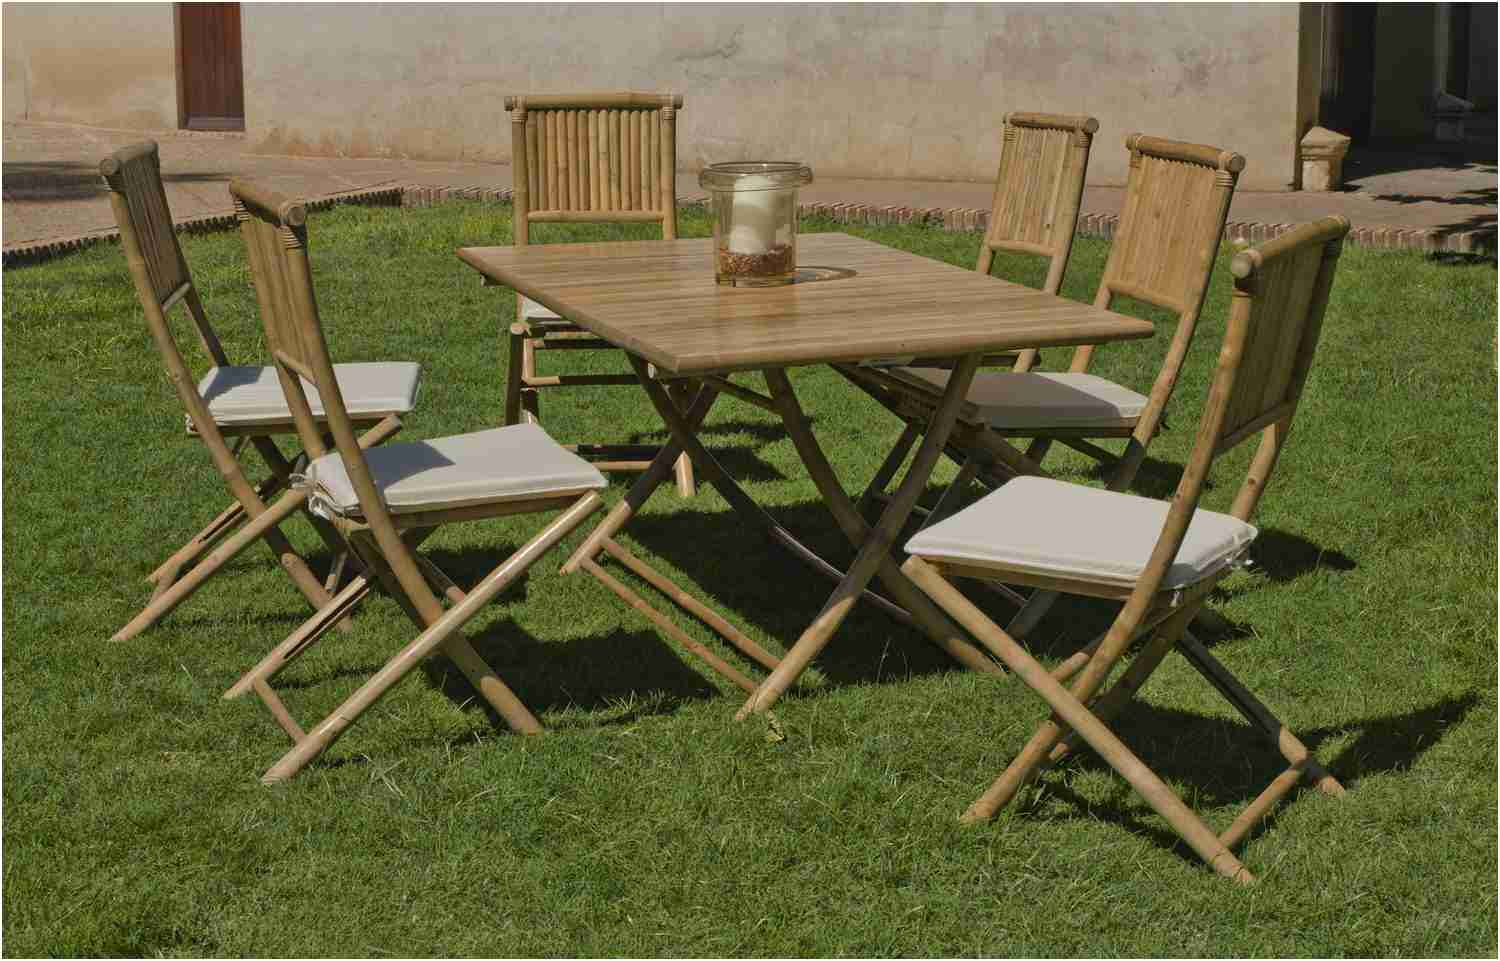 table chaise terrasse elegant ensemble table et chaise exterieur pas cher salon pour de table chaise terrasse